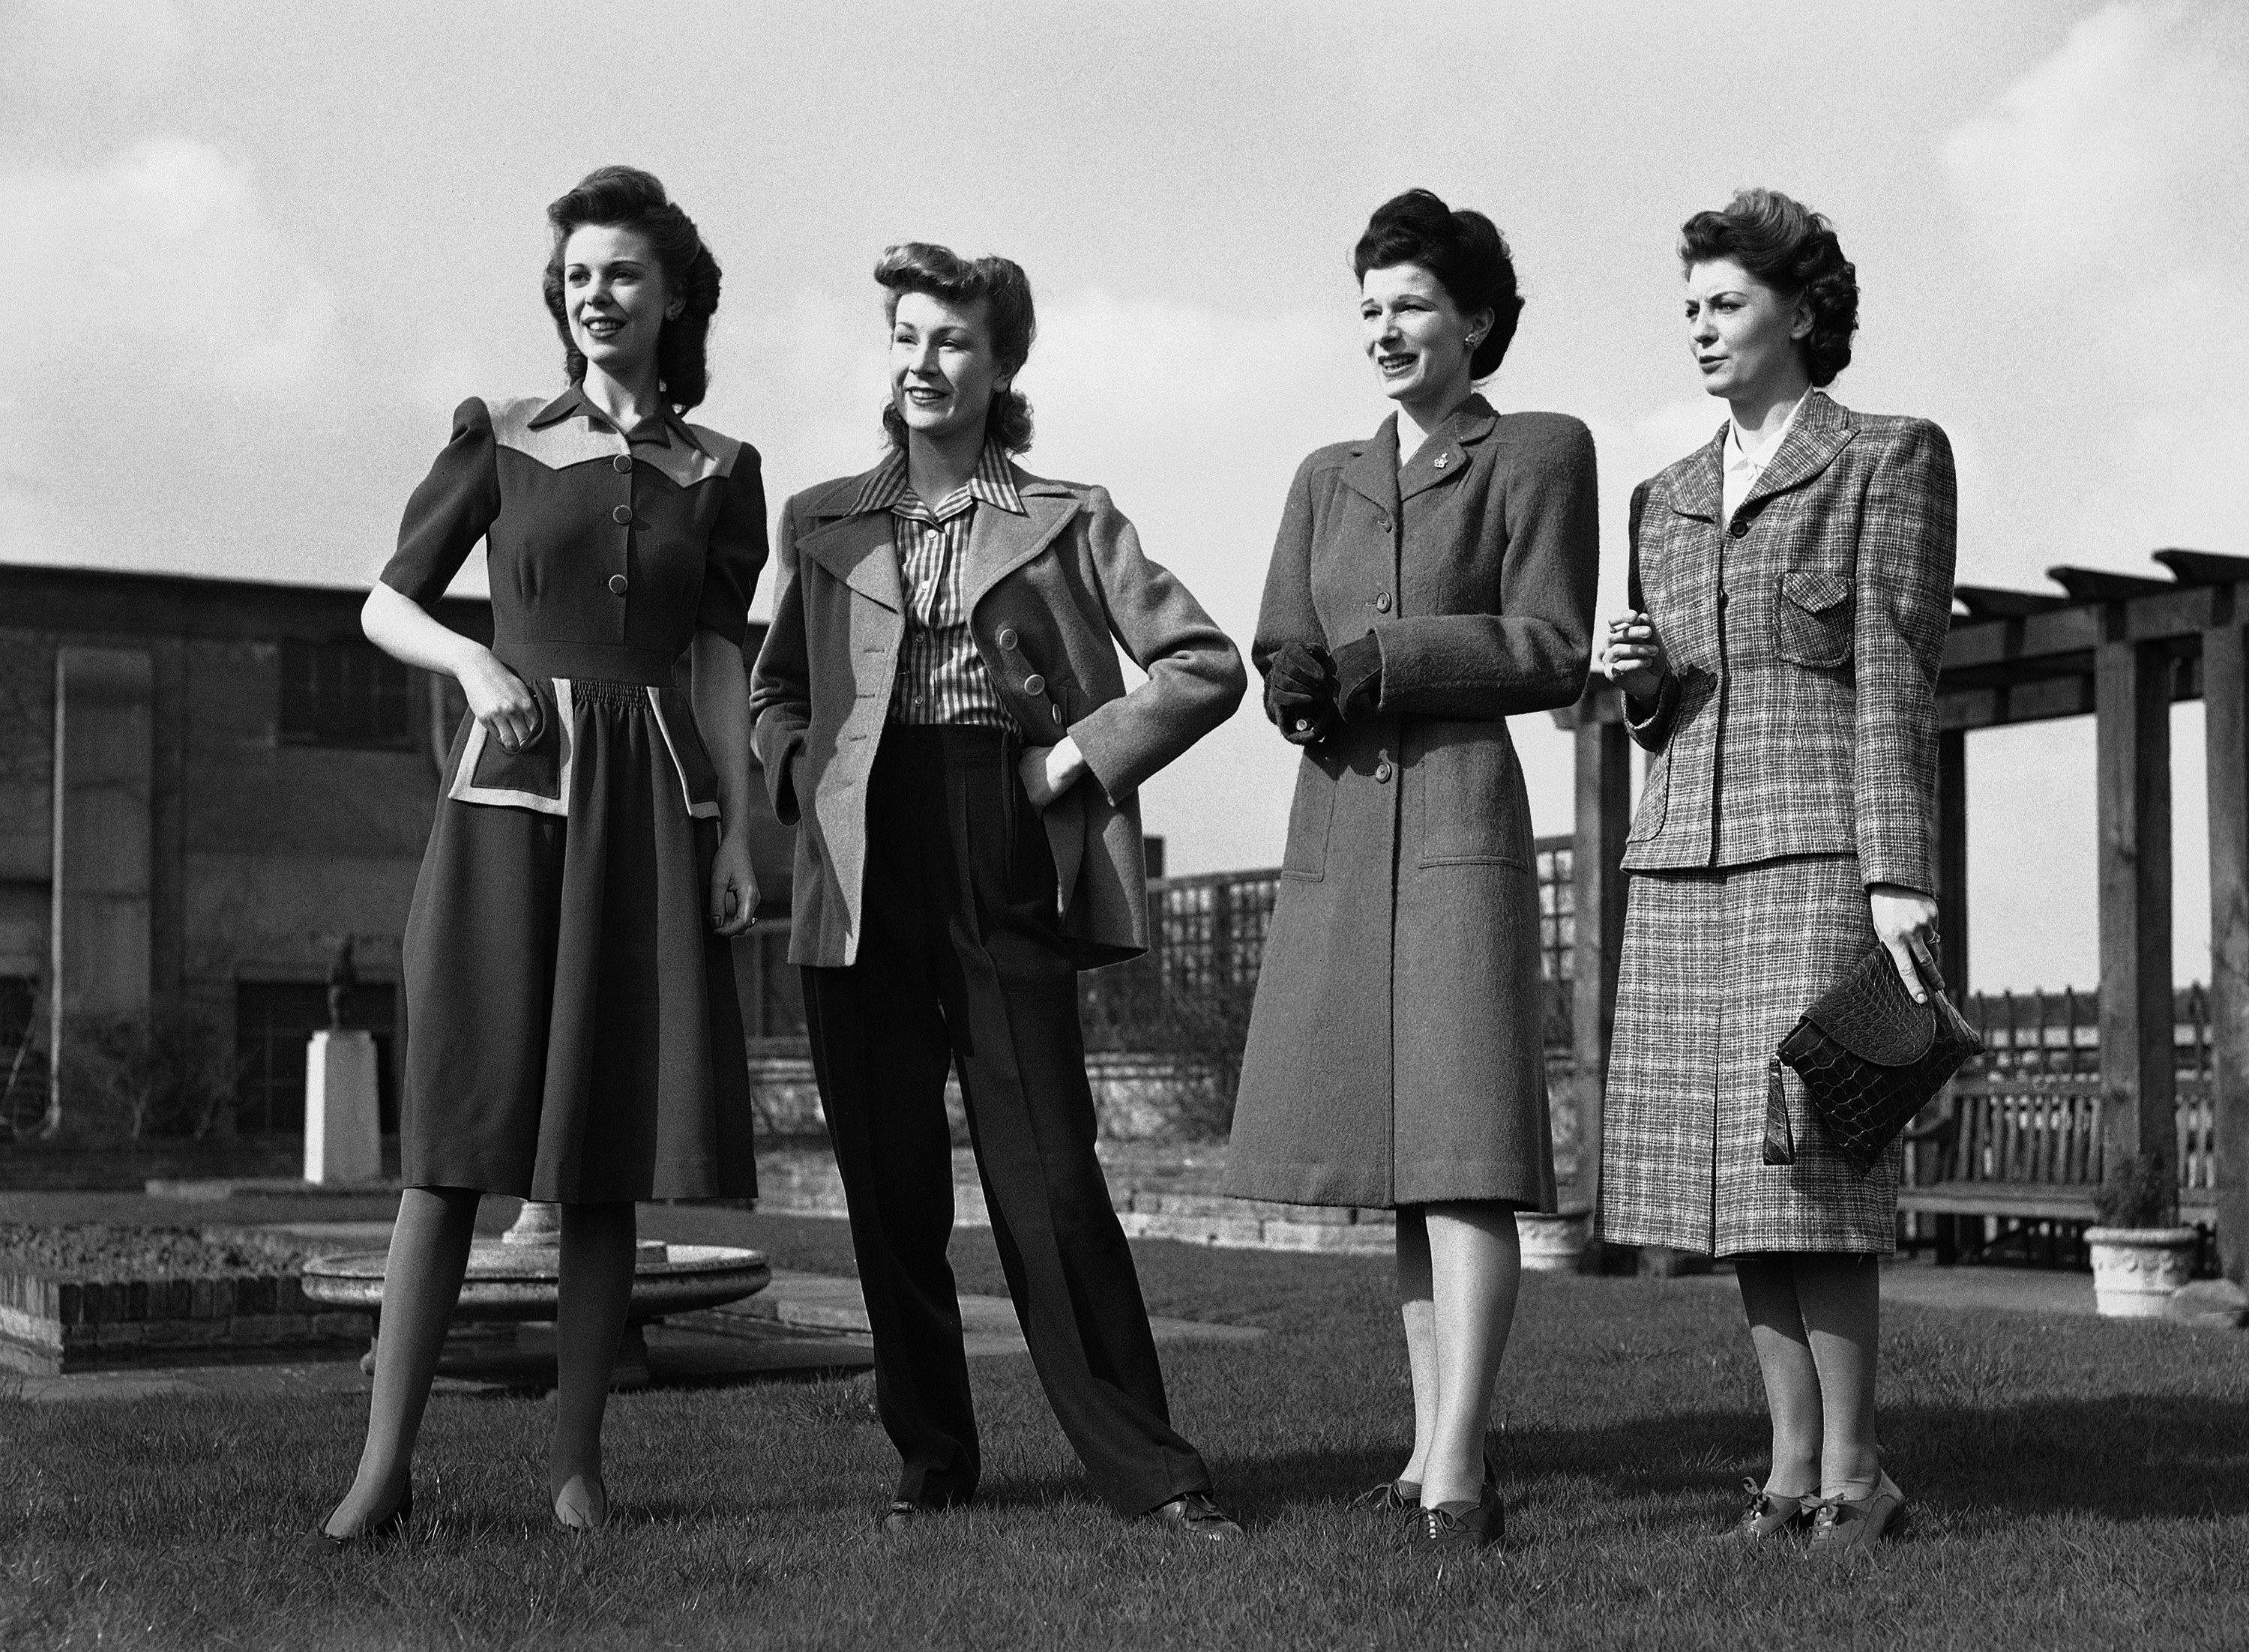 At a famous west end store, Norman Hartnell, Britain's leading dress designer, sponsored a show of the new utility fashions for the coming season on March 9, 1943. These models, said Mr. Hartnell, are designed not only for the home market but also to uphold Britain's fashion prestige abroad. From Left to right are: a 2-tone blue frock by Frances Leopold with unusual model pockets; navy blue Jaeger slacks with camel-coloured duffle coat and a wool-taffeta check blouse, a moss green coat with full yoke and inset belt with balanced pockets.